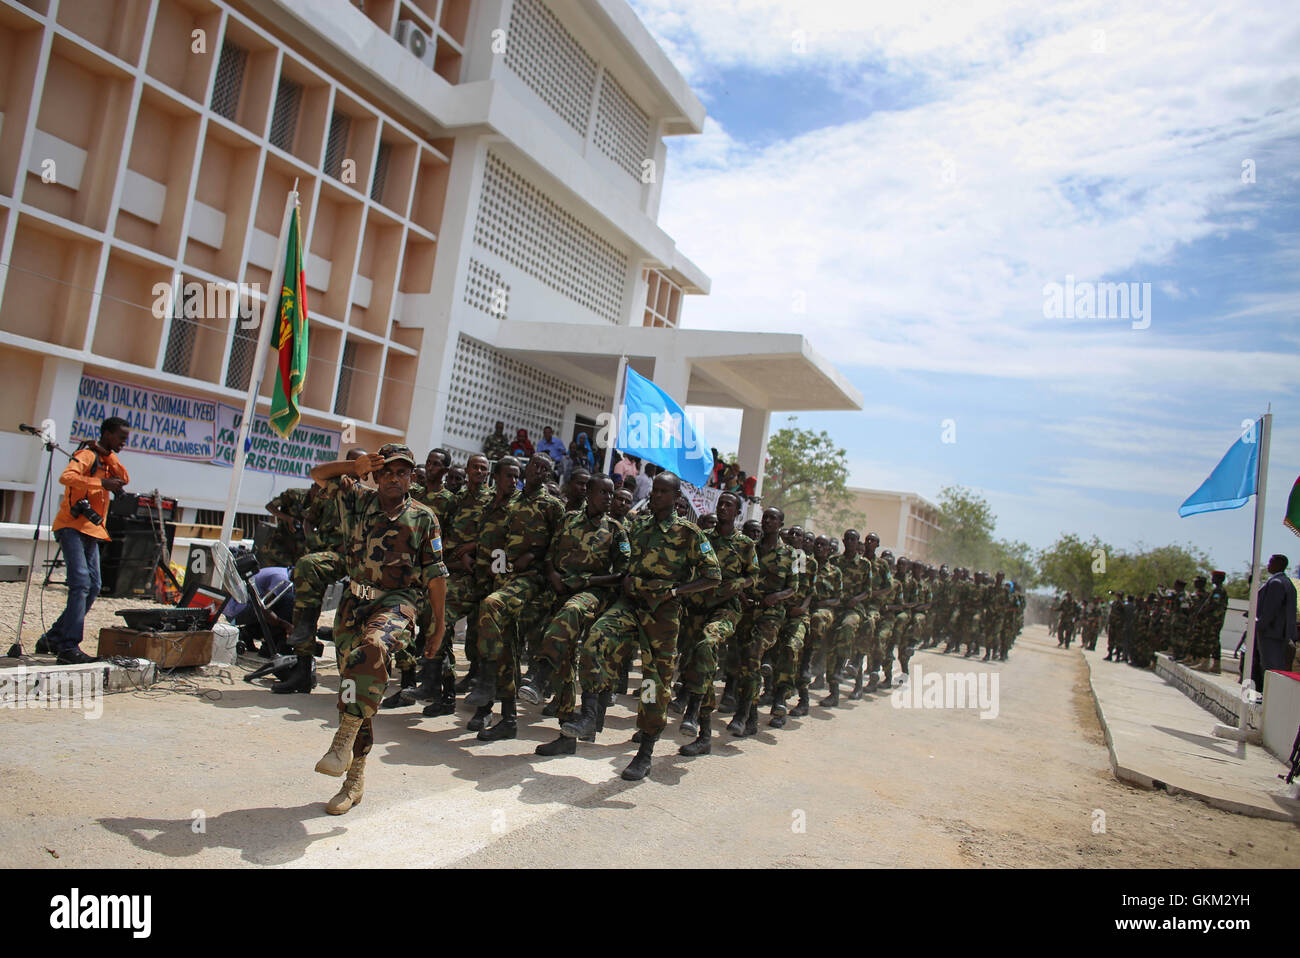 SOMALIA, Mogadishu: In photograph taken and released by the African Union-United Nations Information Support Team 12 April 2013, soldiers of the Somali National Army march during a military parade marking the 53rd Anniversary of the SNA held at the newly refurbished Ministry of Defence in the Somali capital Mogadishu. Somalia is rebuilding it's army, along with many state institutions and facilities after being racked by years of internal conflict and division and is enjoying it's longest period of relative peace since major operations by the SNA supported by forces of the African Union Missio Stock Photo